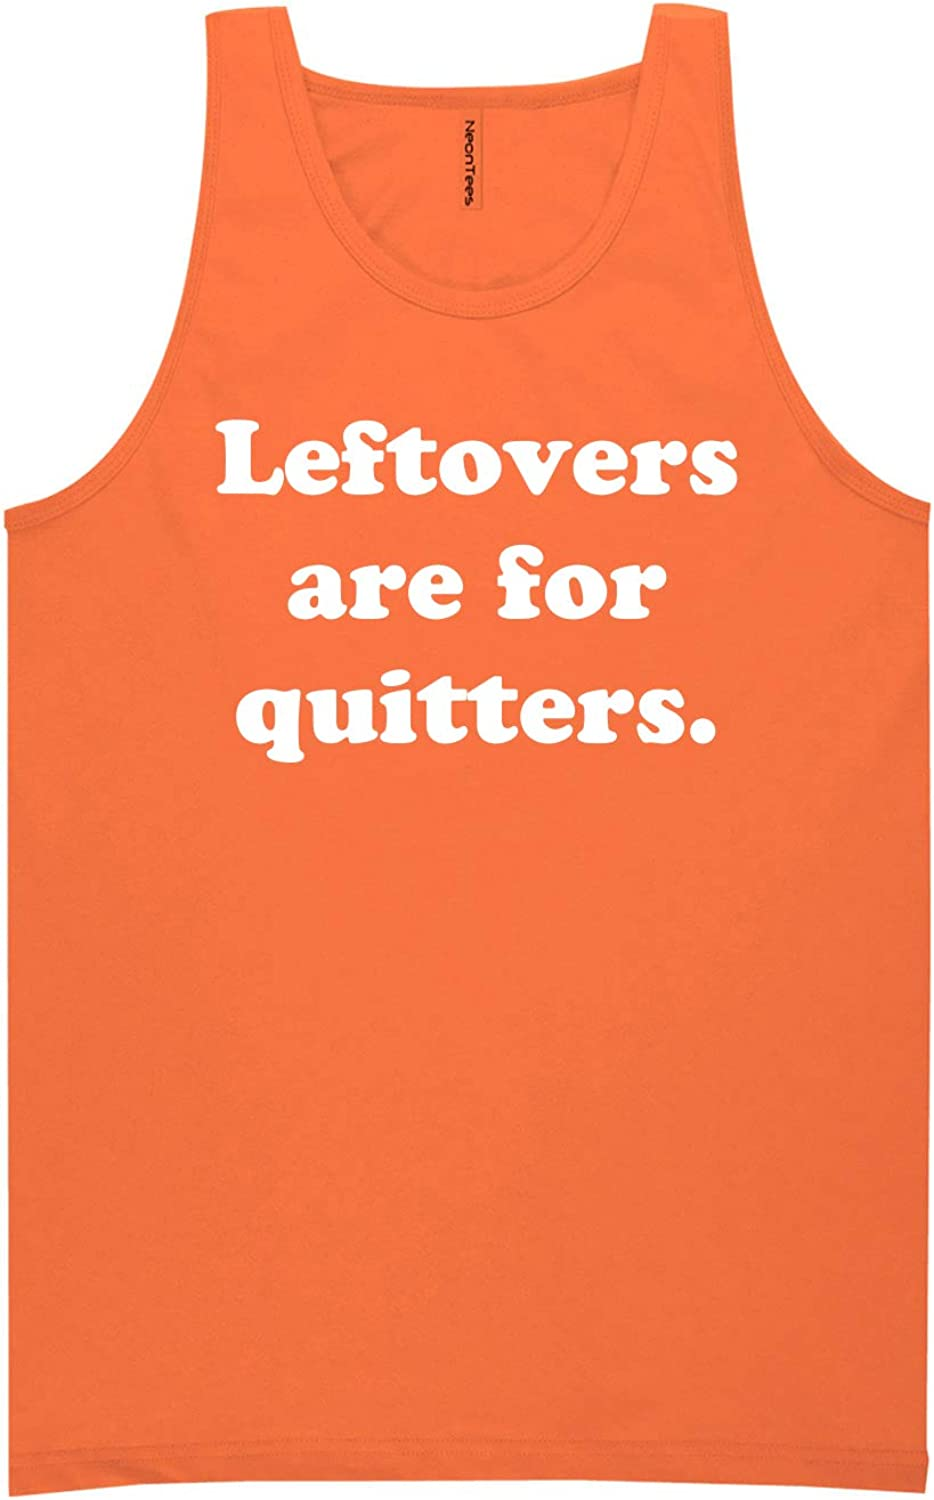 Leftovers are for Quitters Neon Orange Tank Top - XX-Large